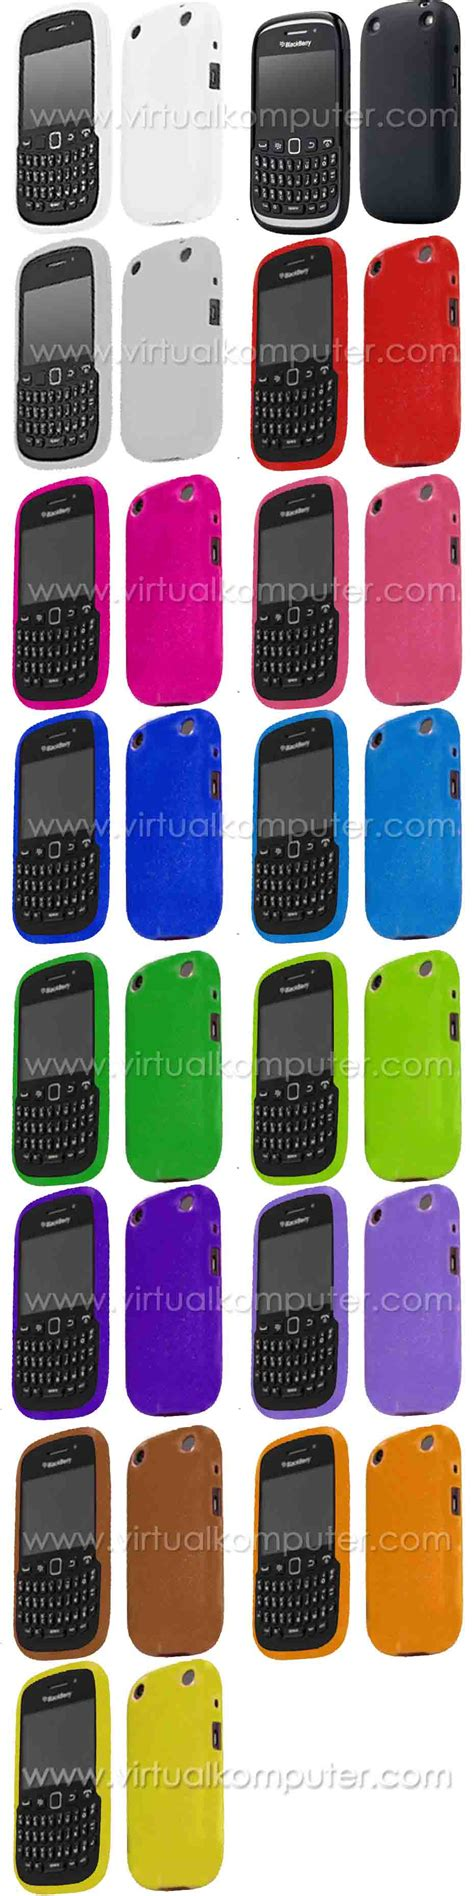 Jelly For Xiao Mi 4i Jakarta areahp hardcase for blackberry curve 9310 9320